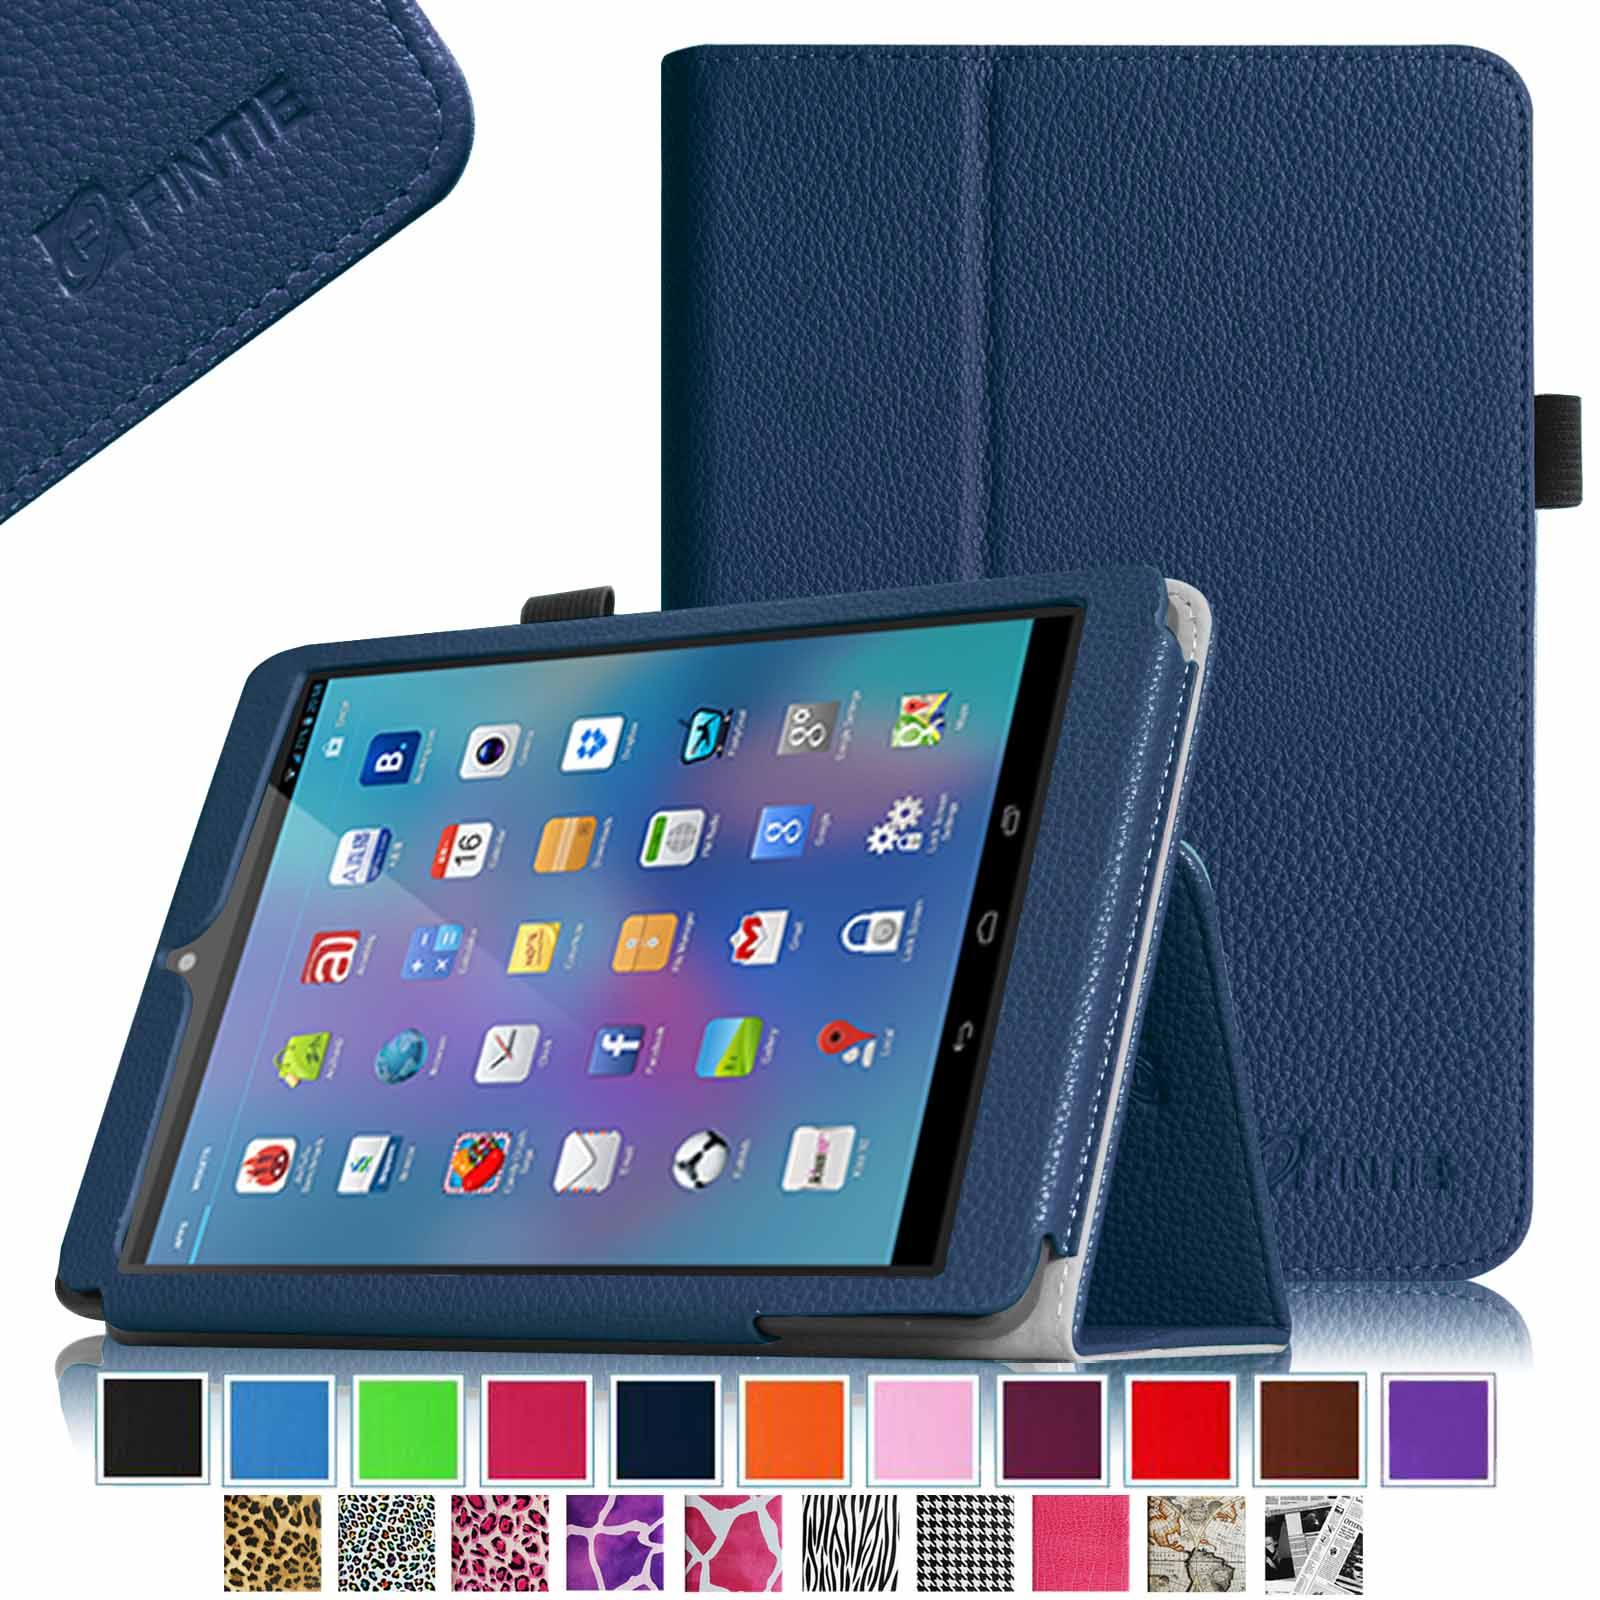 "Fintie Nextbook 8(NX785QC8G) 7.85"" Android Tablet Case - Premium PU Leather Folio Cover with Stylus Holder, Navy"